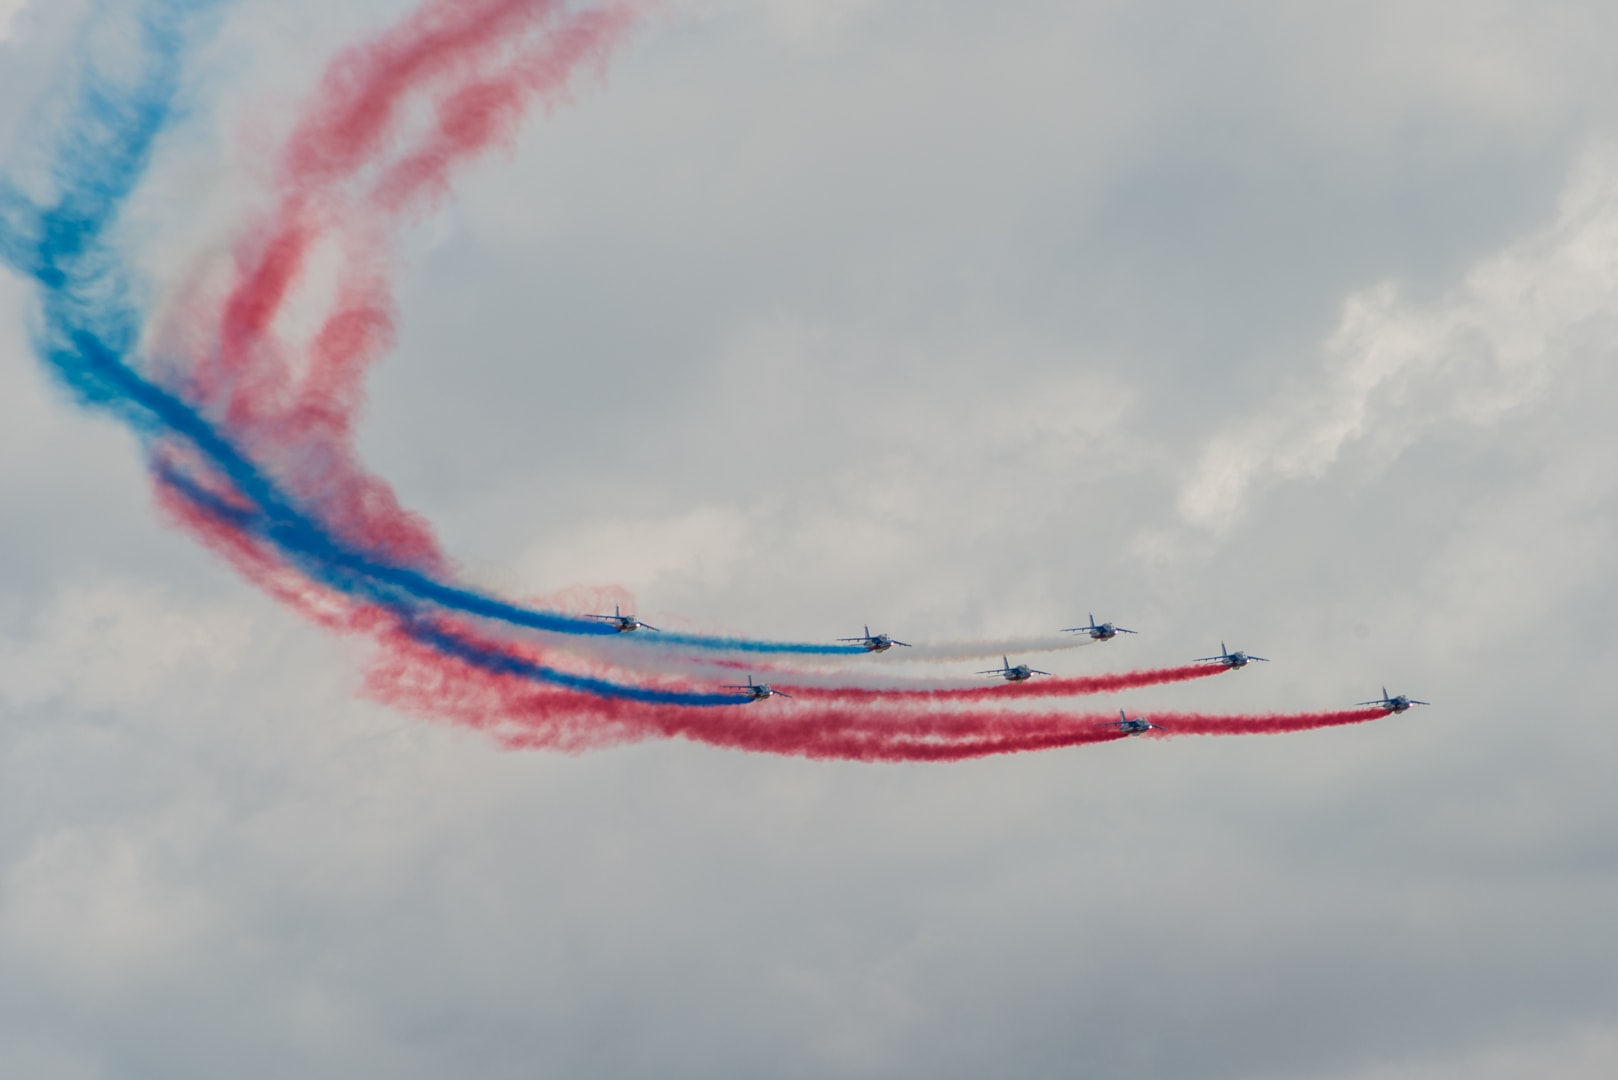 Photo de la patrouille de france n°25